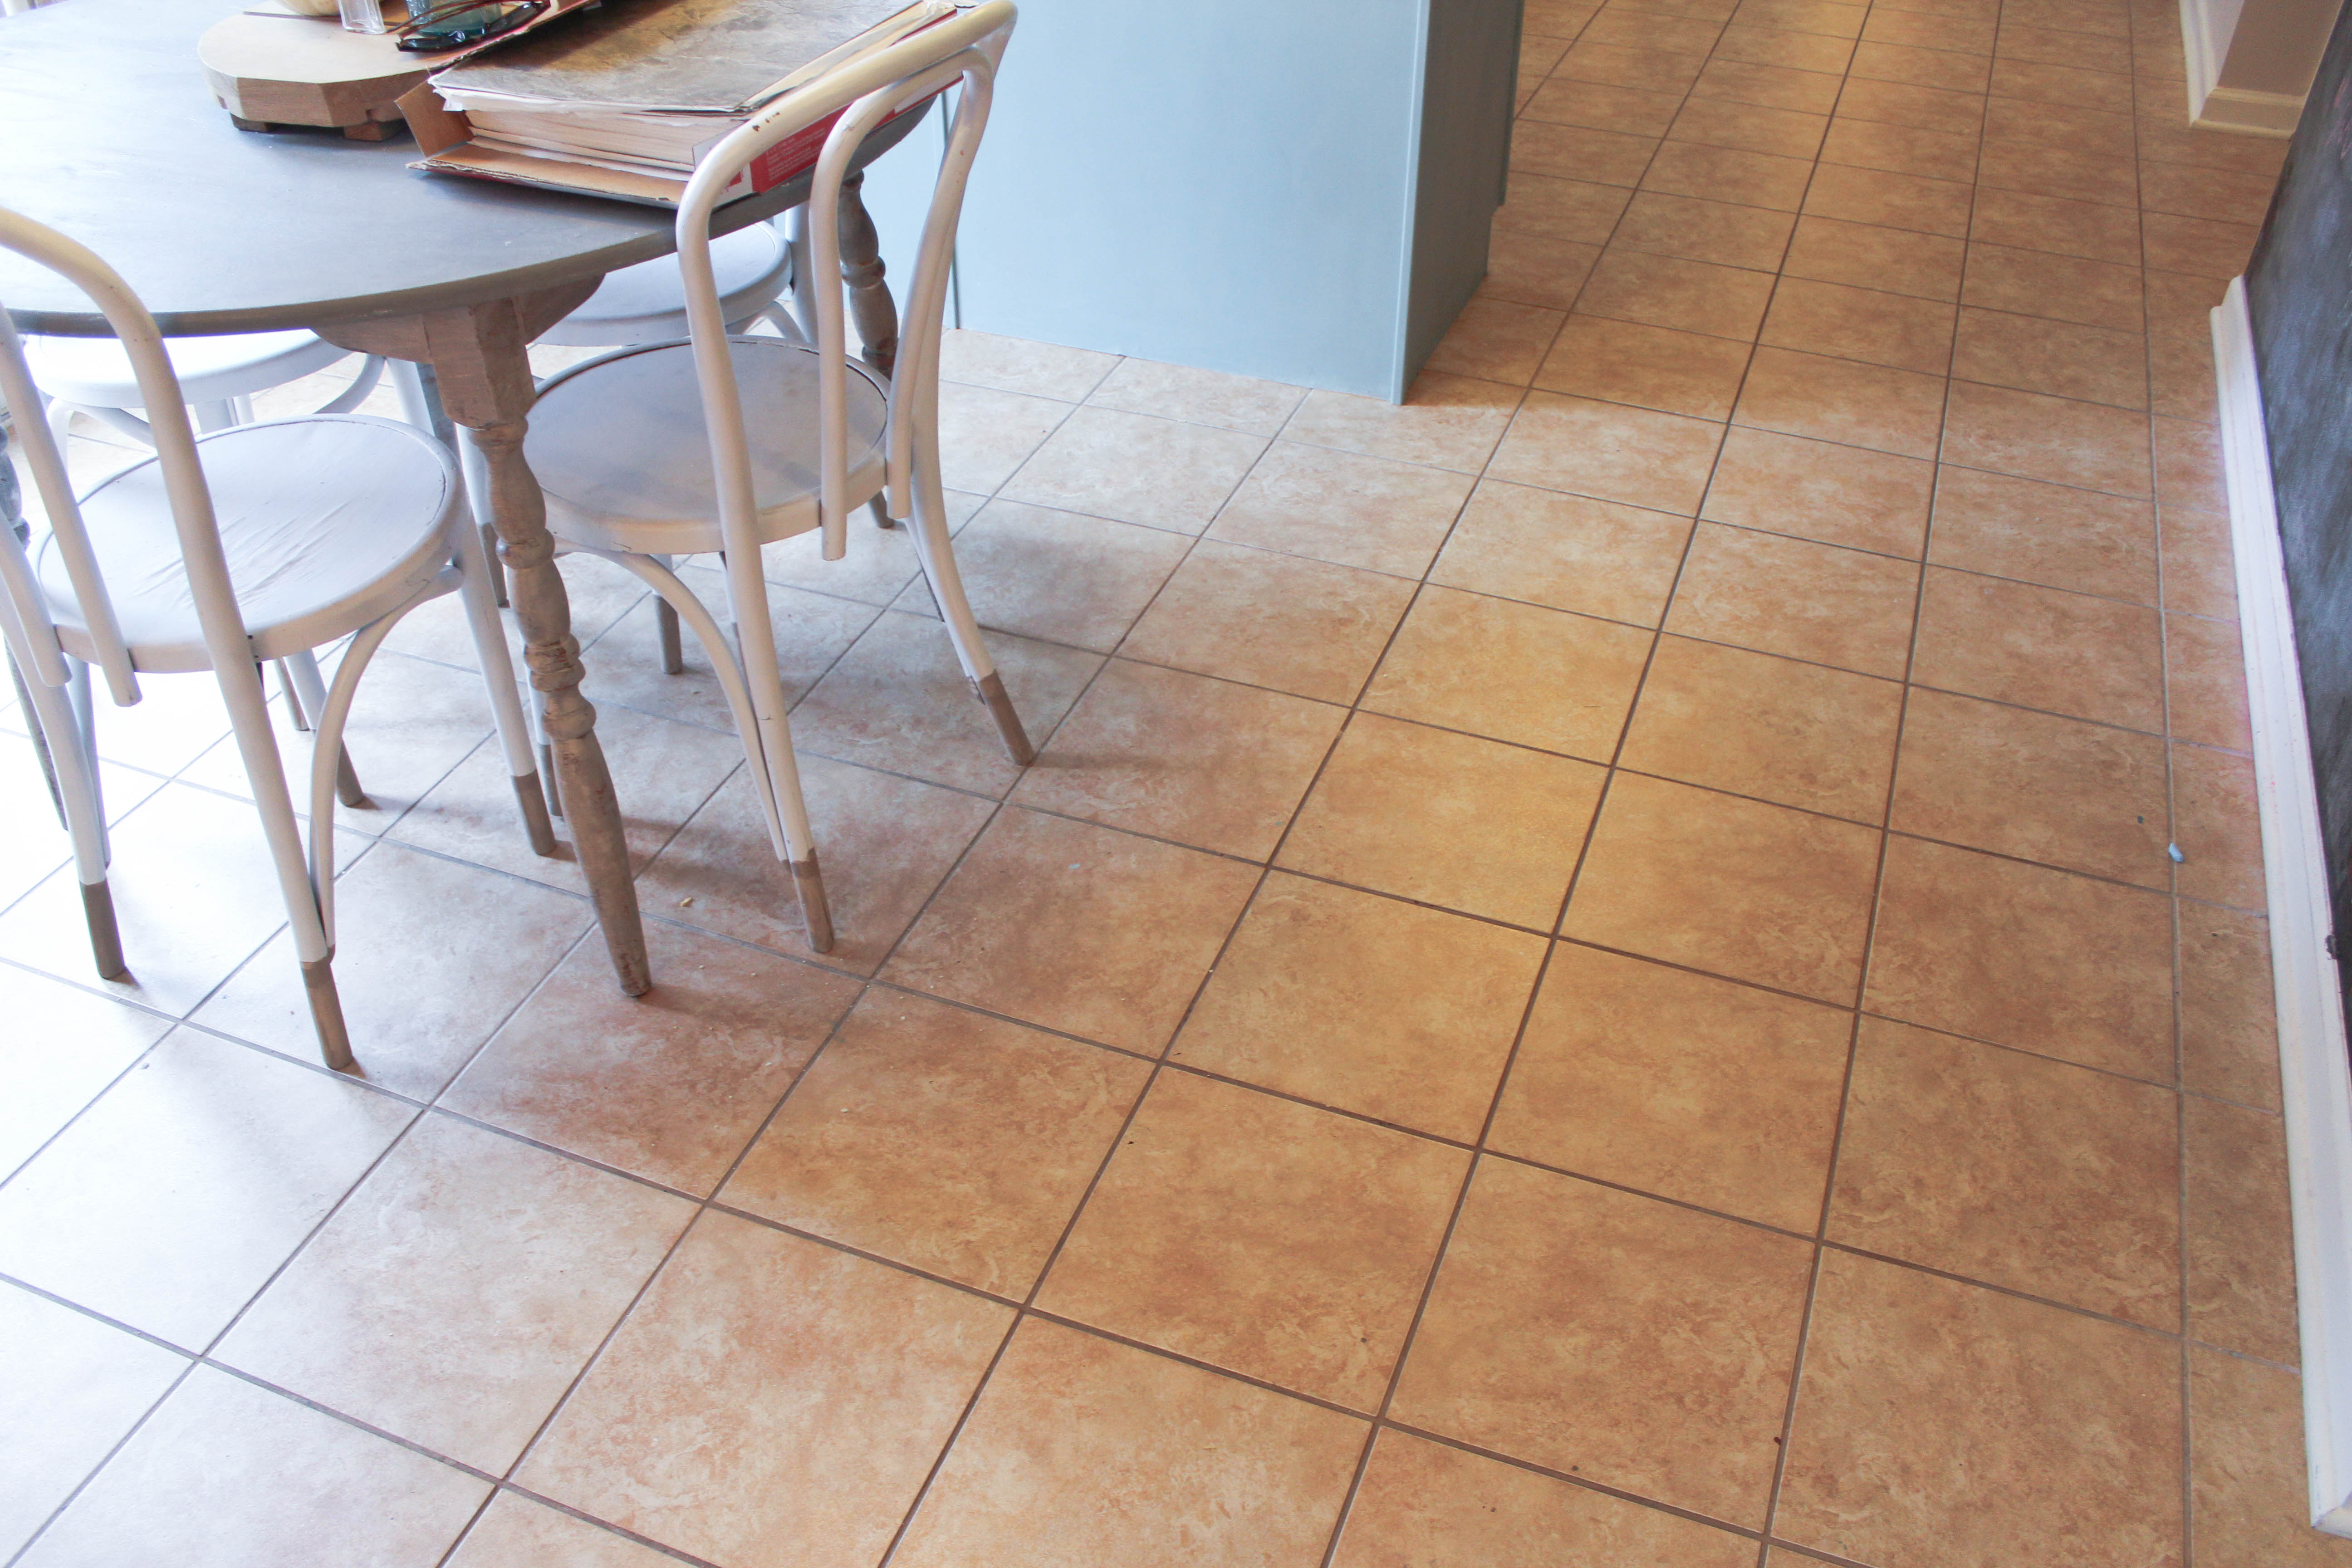 How to tile over existing floor tiles